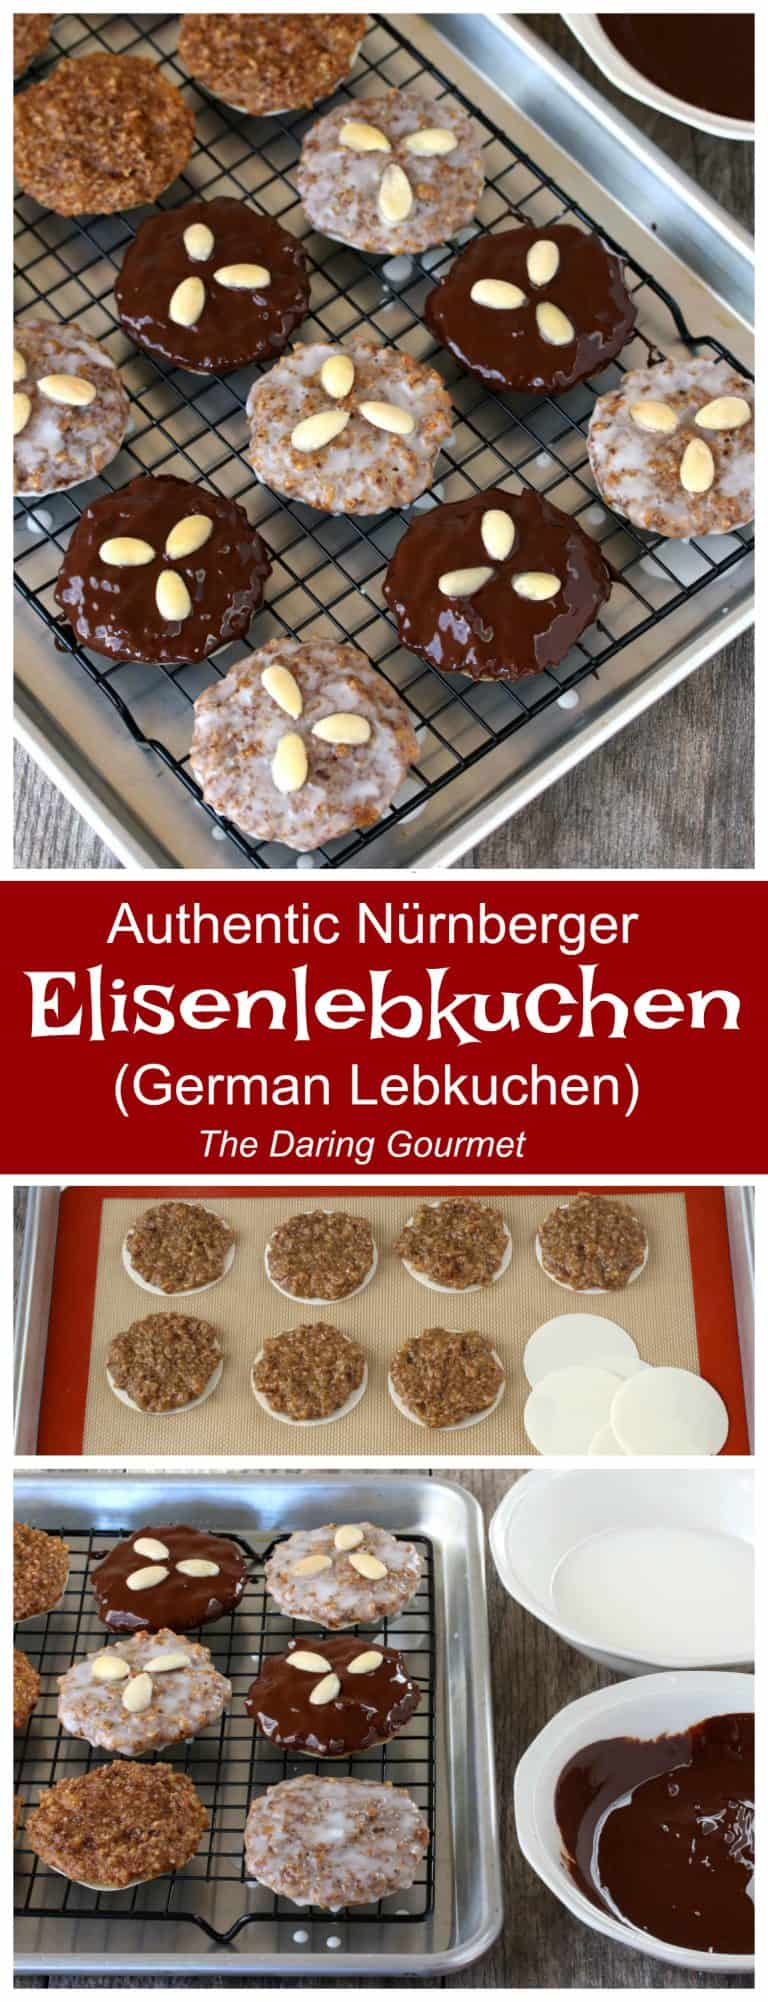 lebkuchen recipe german authentic traditional nuremberg elisenlebkuchen